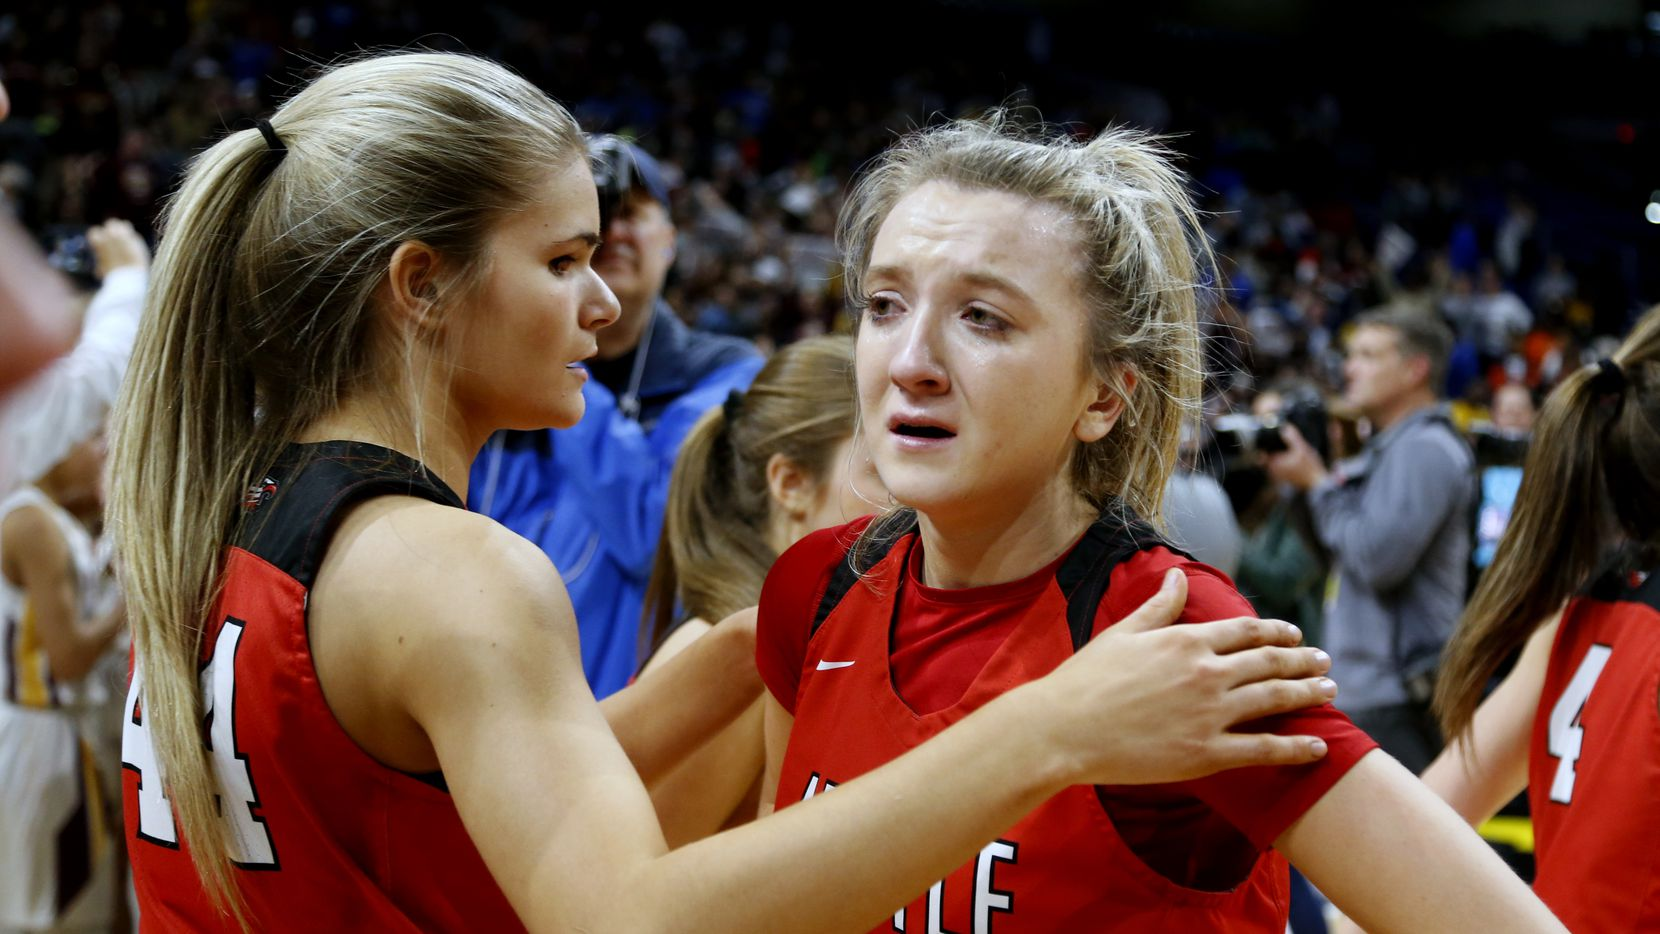 Argyle guard Rhyle McKinney #5 is consoled by Argyle forward Megan Netzelman #44 after Argyle lost in OT in a 4A final on Saturday, March 7, 2020 at the Alamodome.